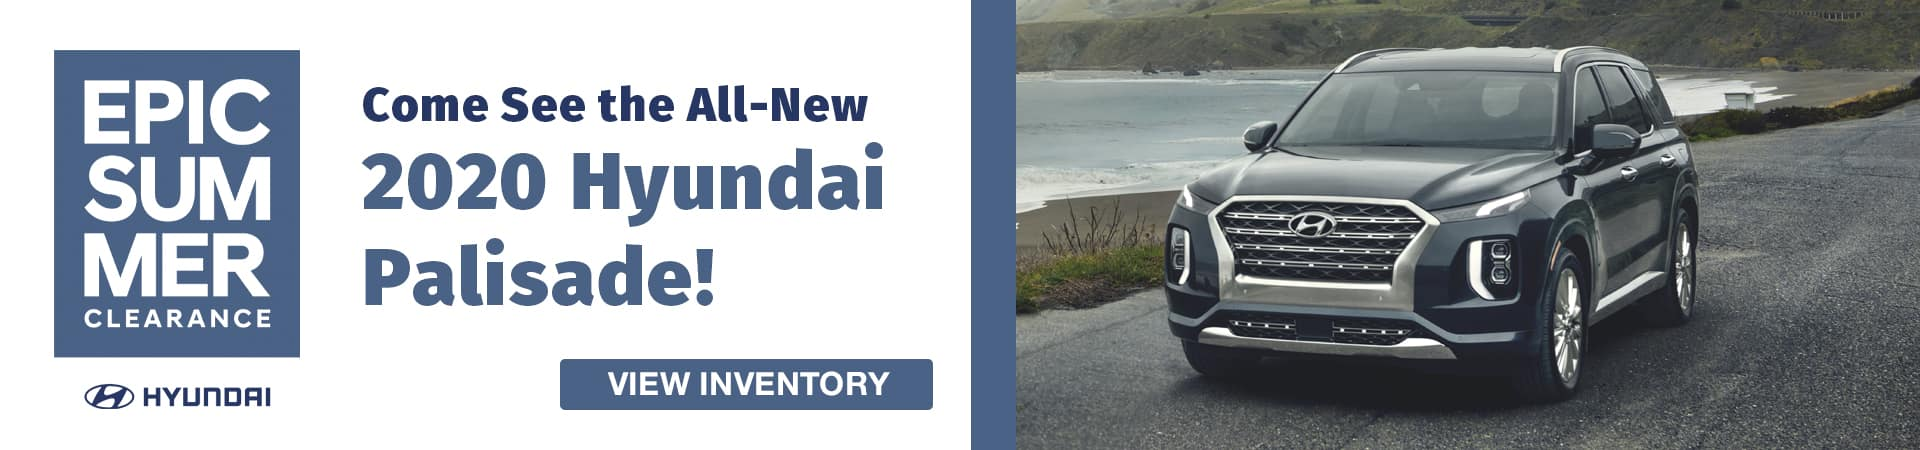 Check out the all-new 2020 Hyundai Palisade in Murfreesboro TN